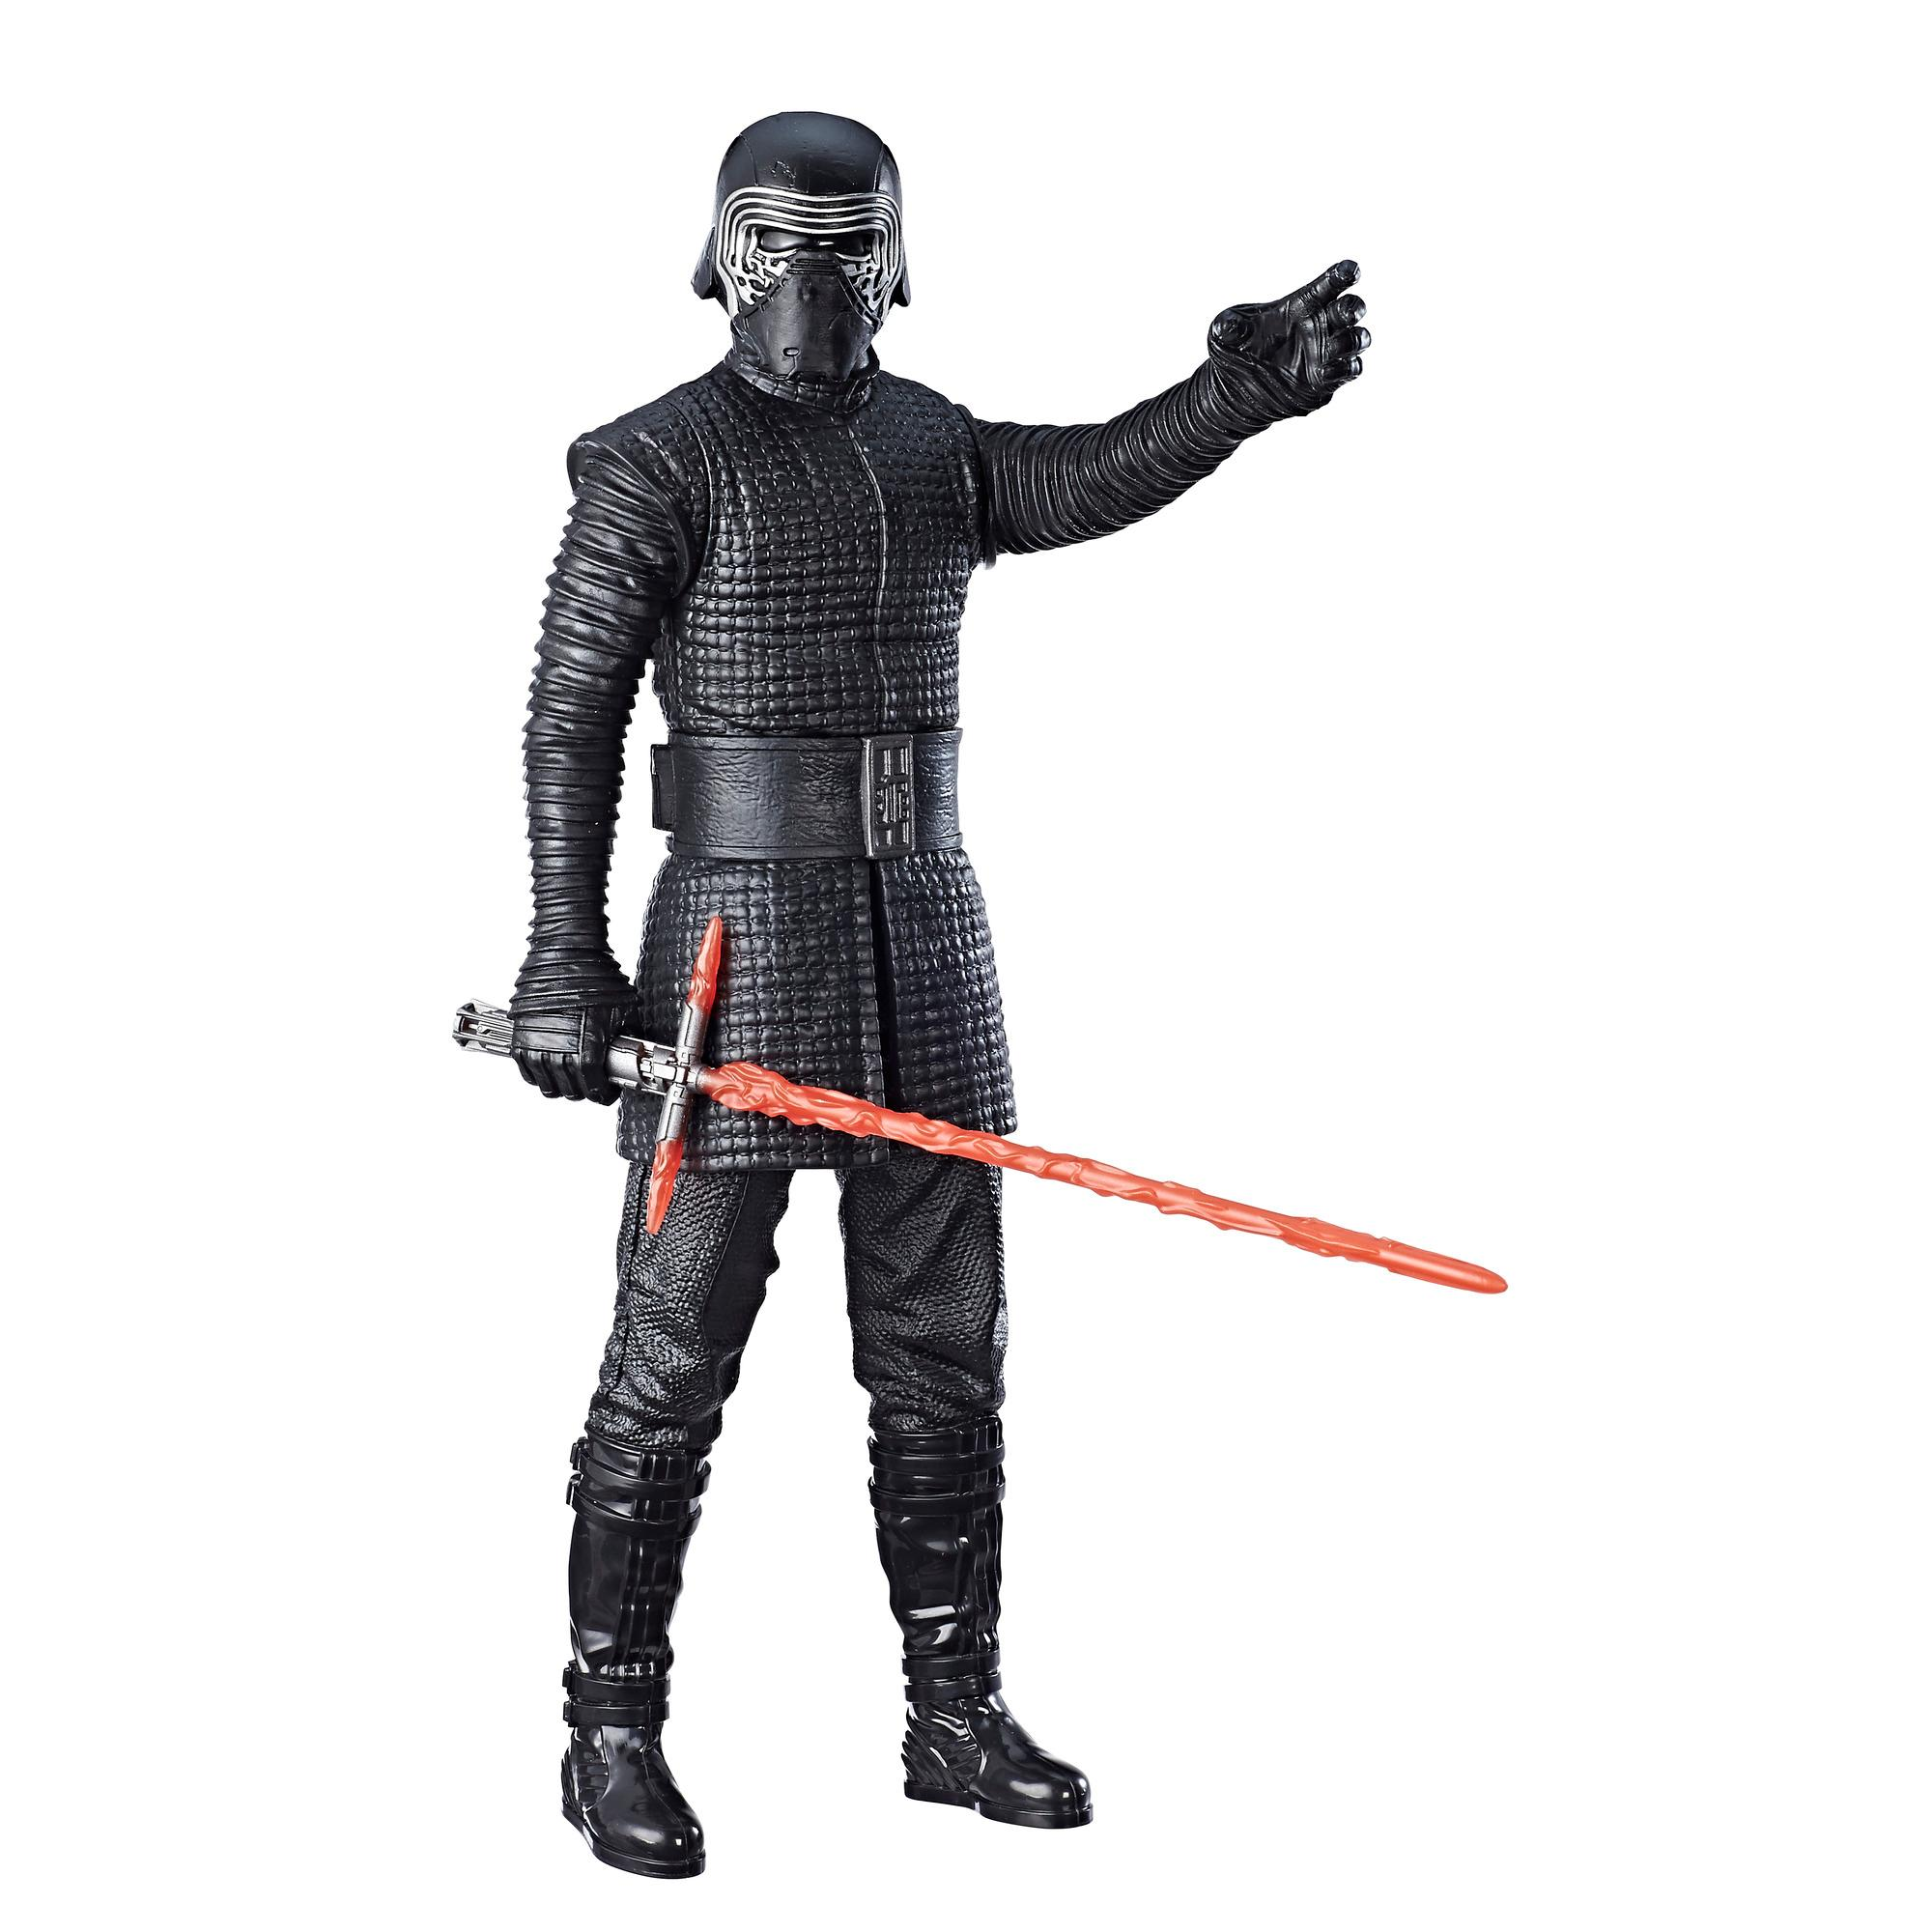 STAR WARS EPISODIO 8 HERO SERIES FIGURA EPISODIO 8 KYLO REN